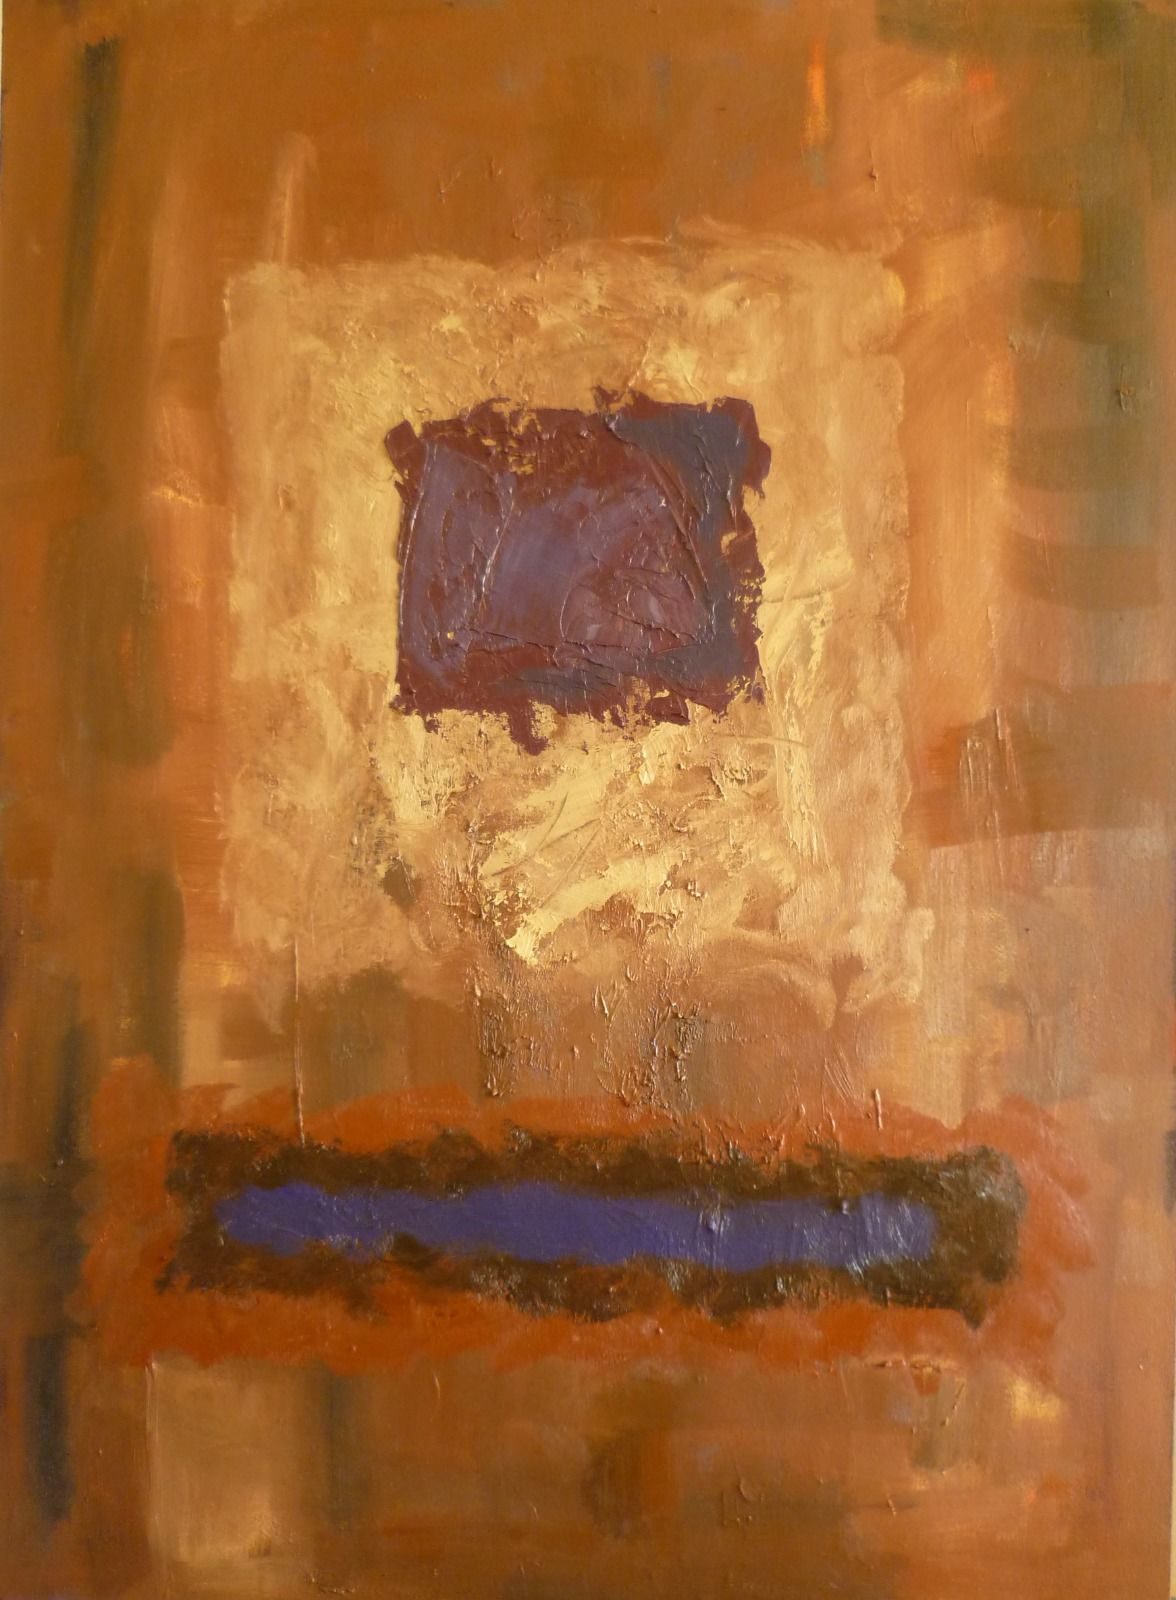 Worlds 1. 80x110x4.5cm (oil on canvas)